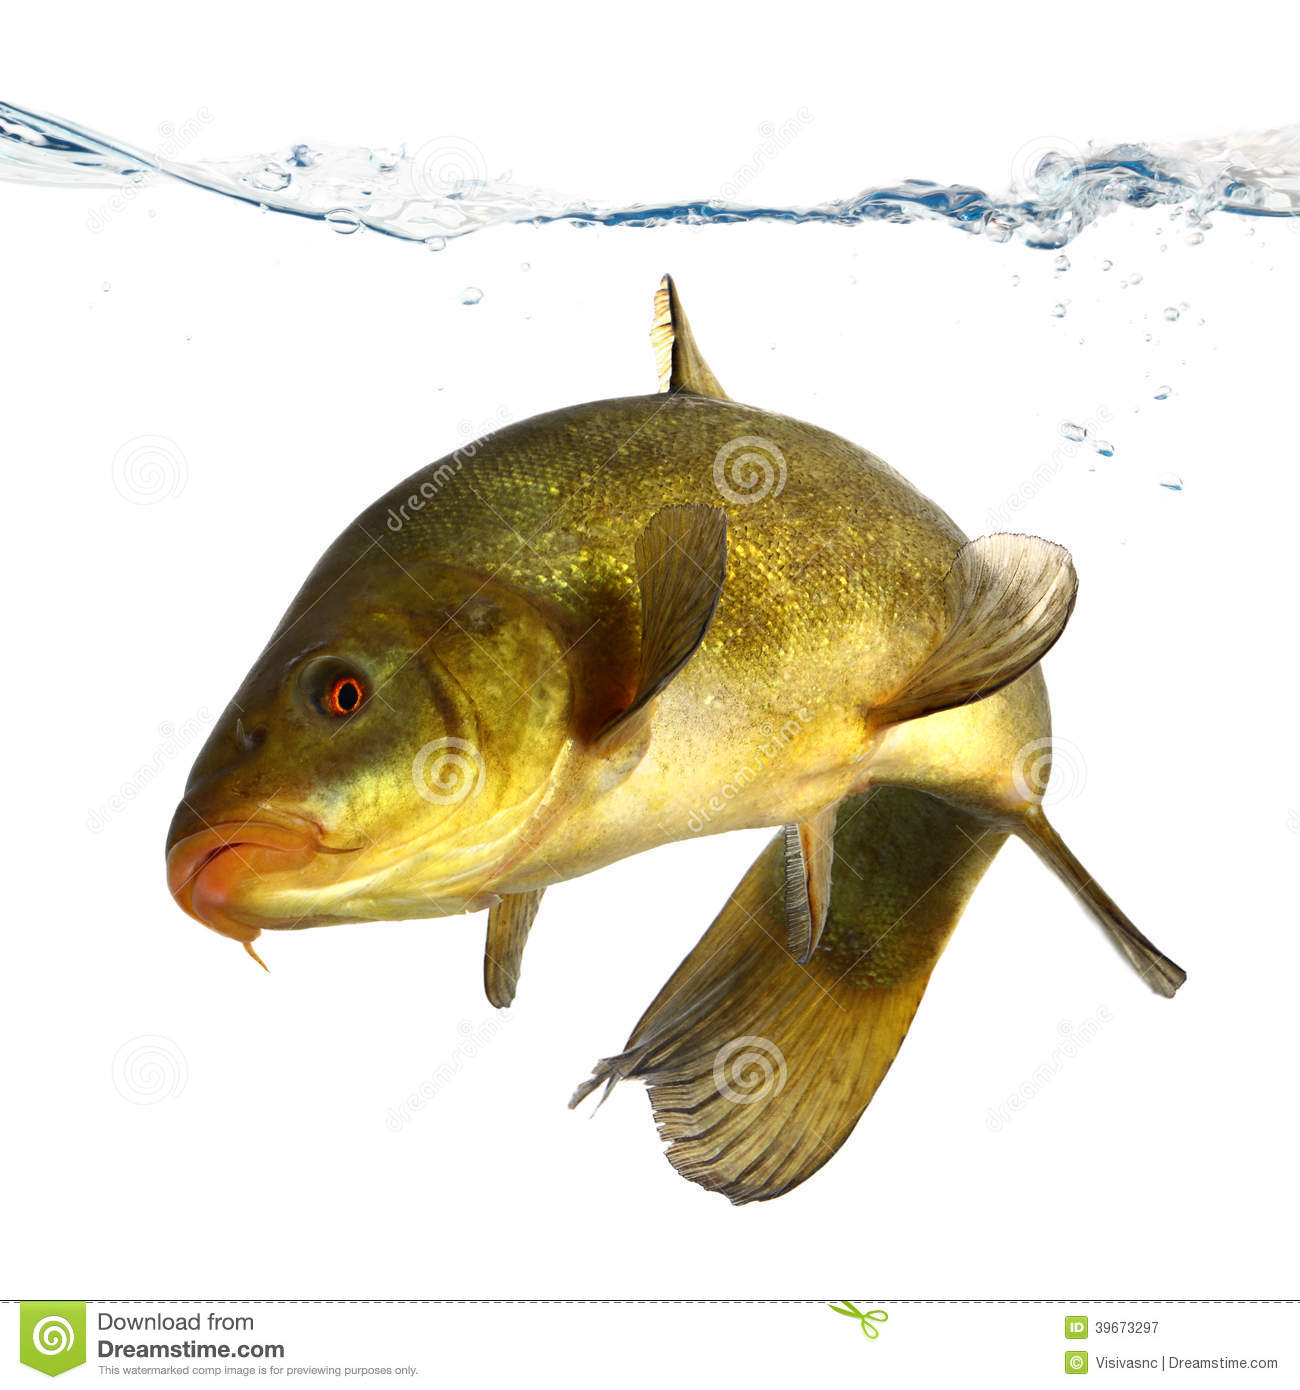 Tench fish royalty free stock photo for Dream of fish swimming